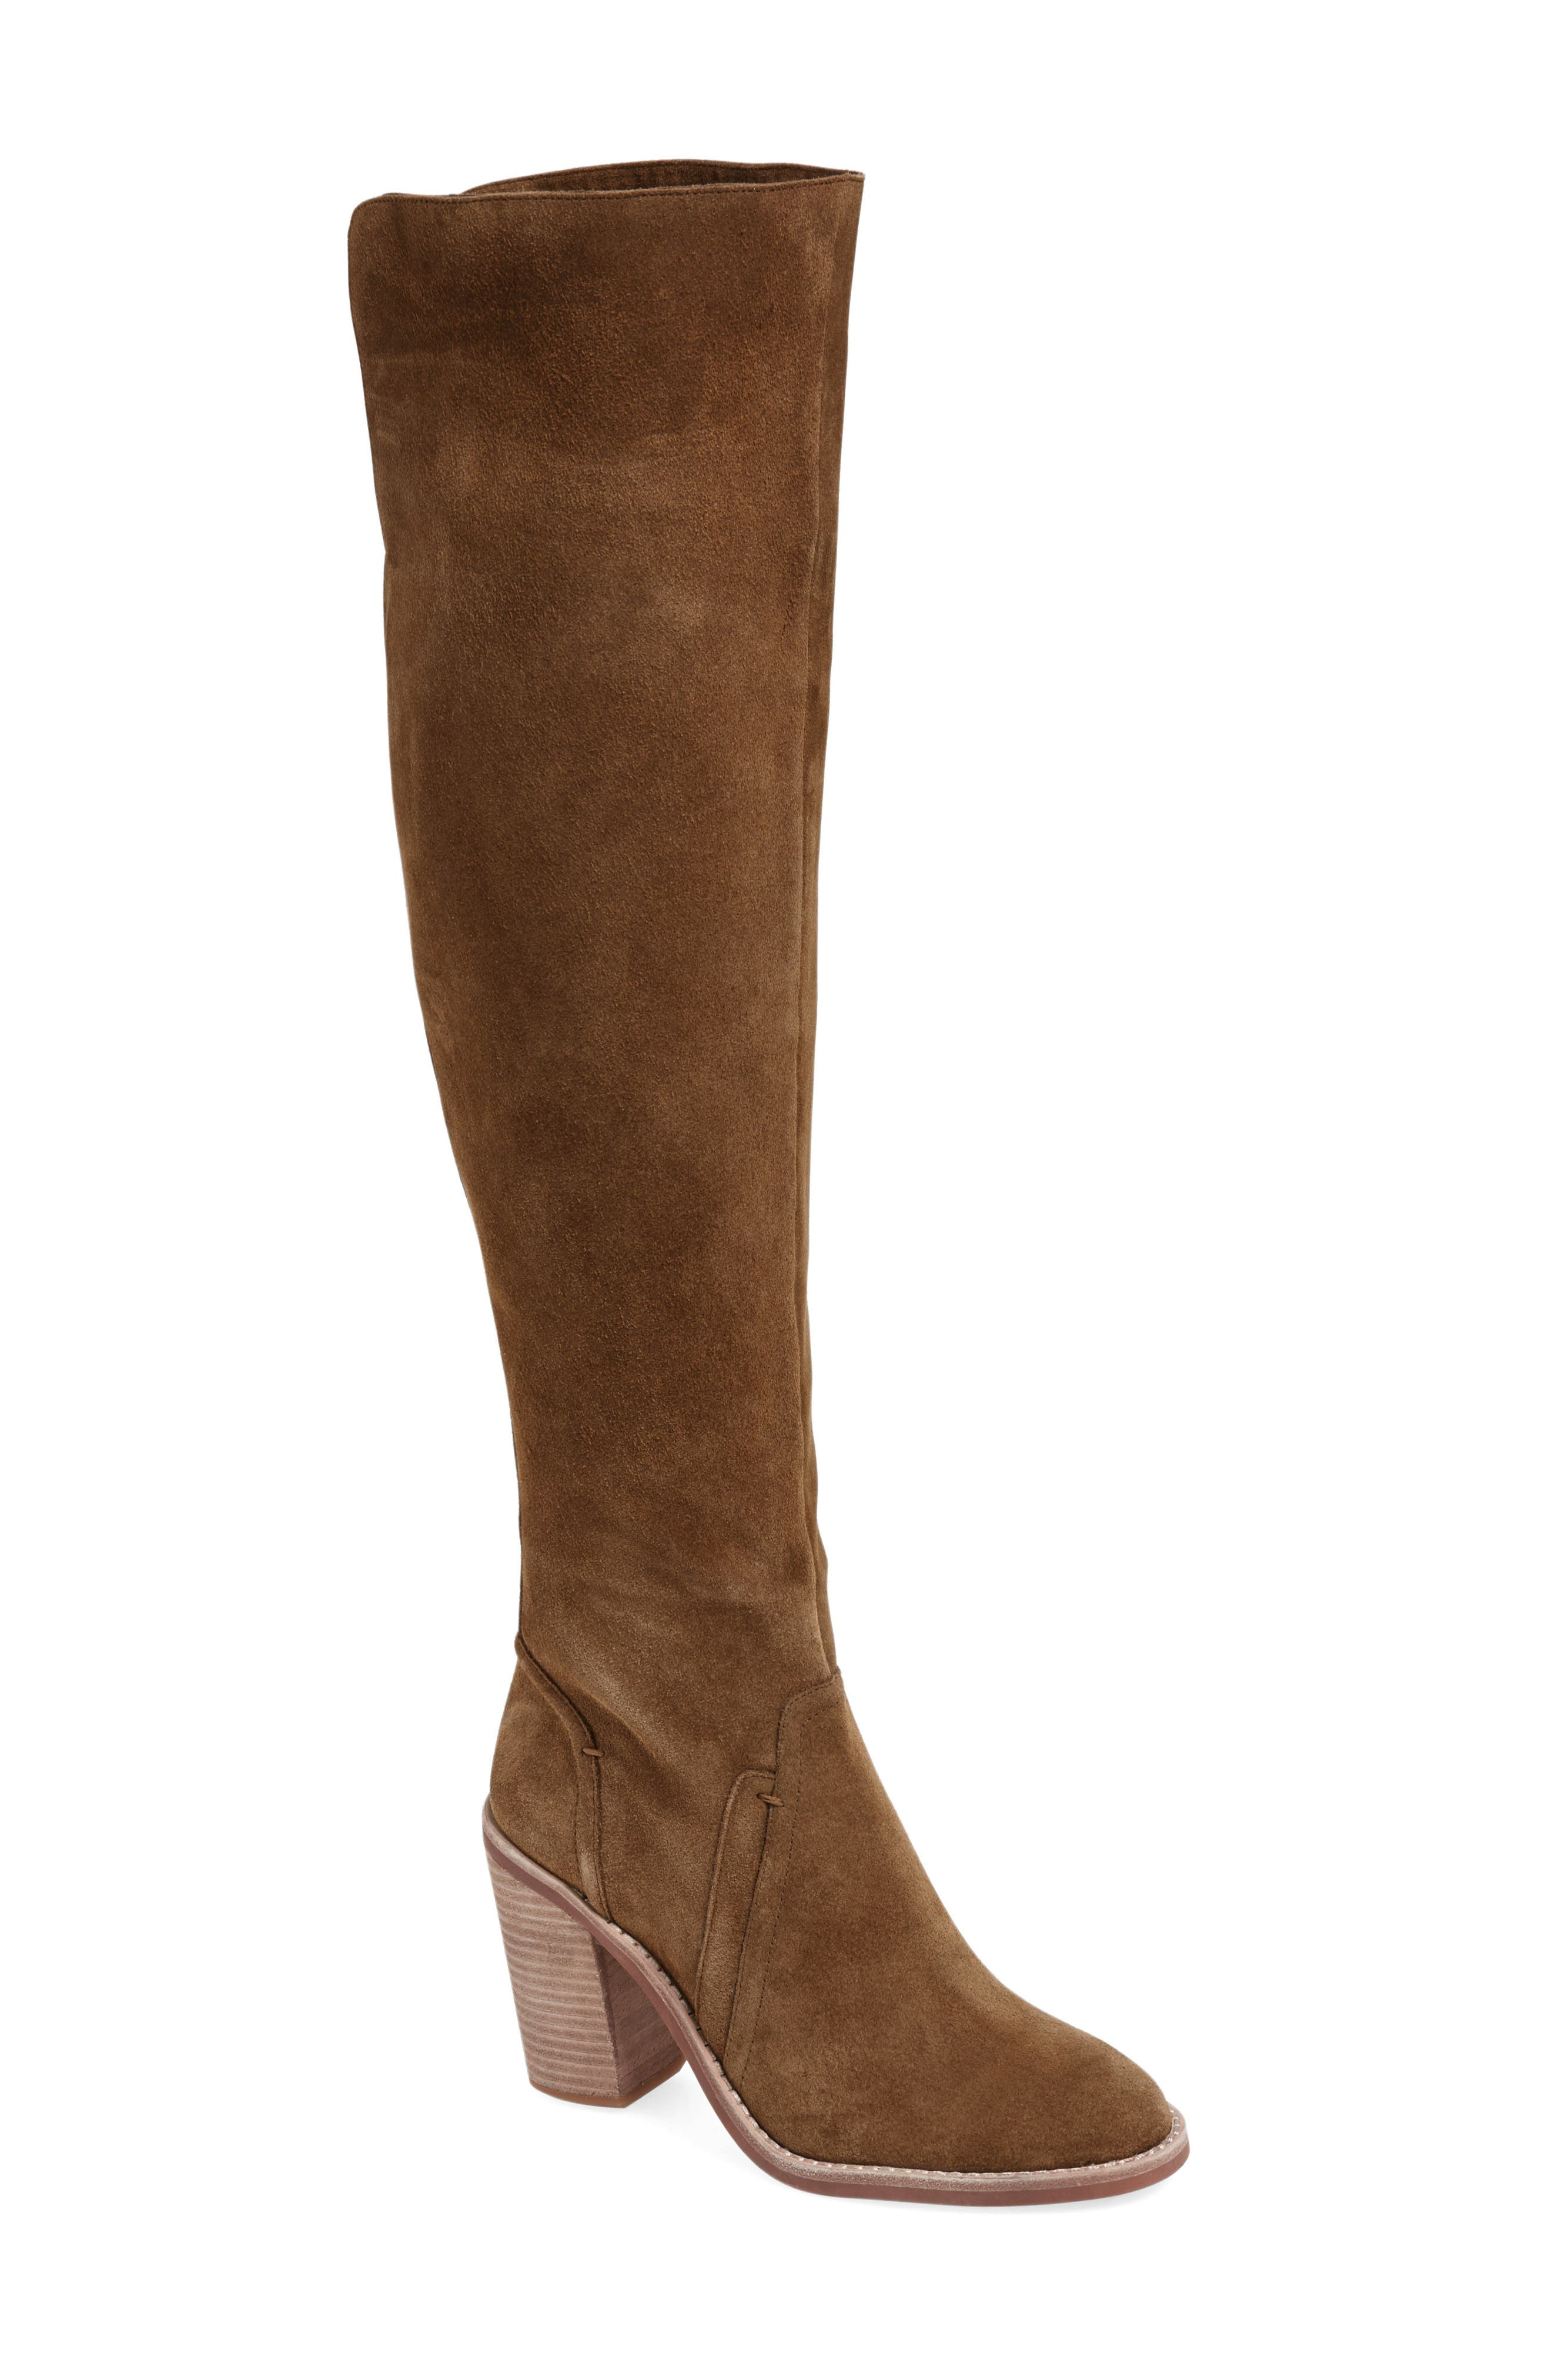 Alternate Image 1 Selected - Vince Camuto 'Melaya' Over the Knee Boot (Women) (Nordstrom Exclusive)